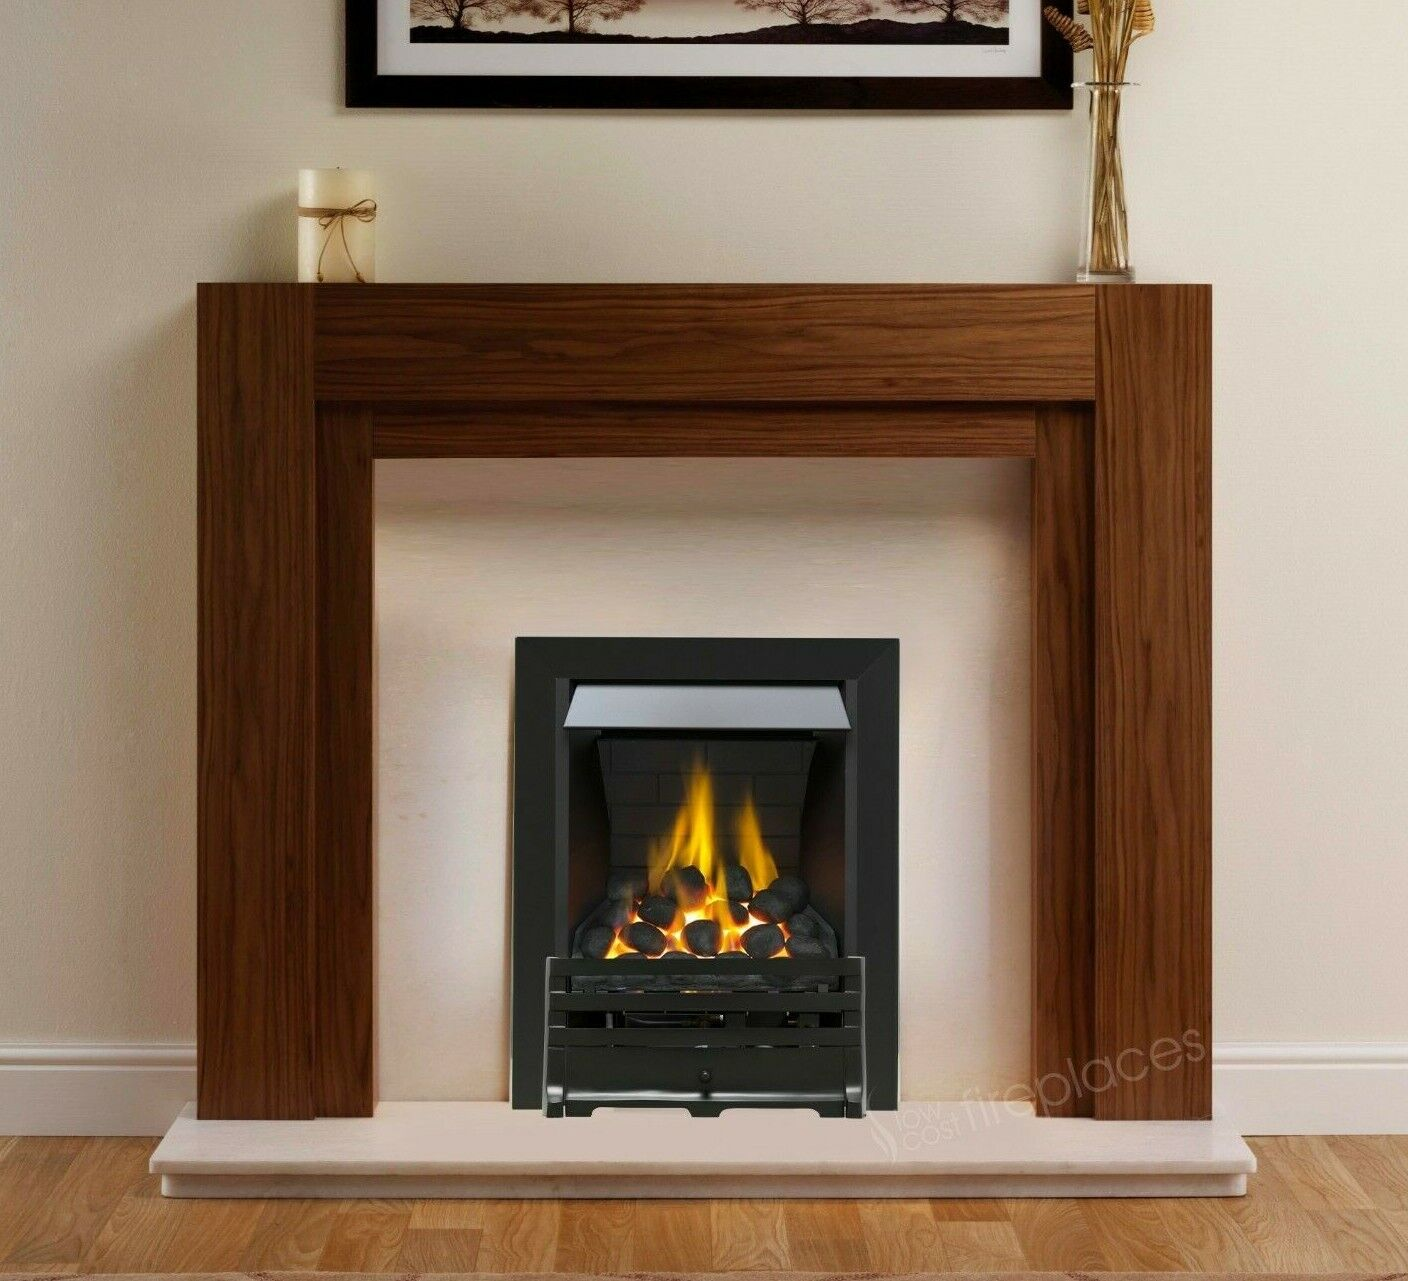 Gas Walnut Oak Surround Cream Marble Modern Black Fire Fireplace Suite Large 54 Ebay